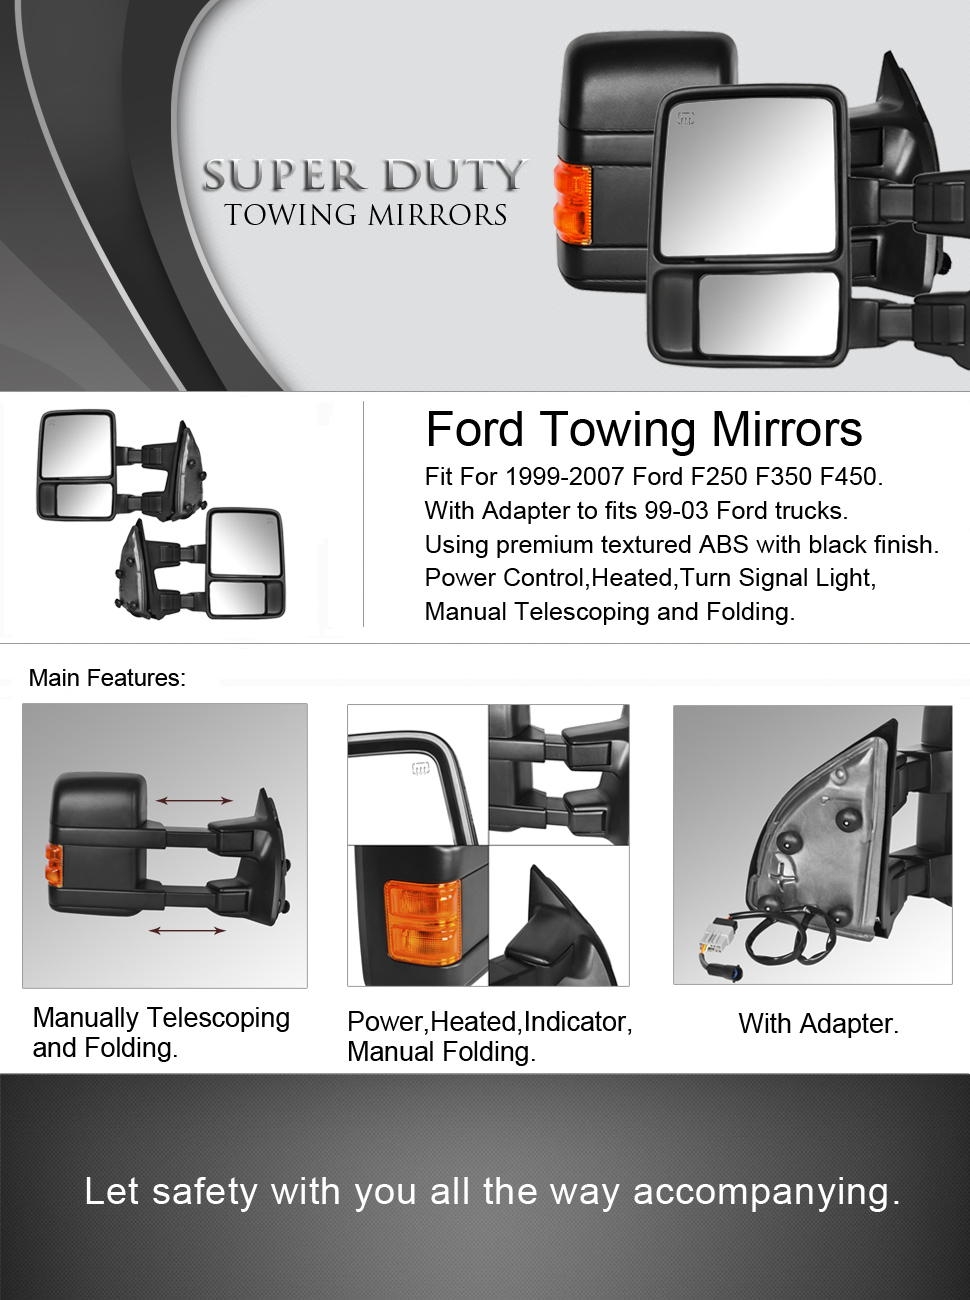 Wiring Diagram For 2000 Ford F 250 Not Lossing F450 Abs Amazon Com Dedc Towing Mirrors F250 Tow